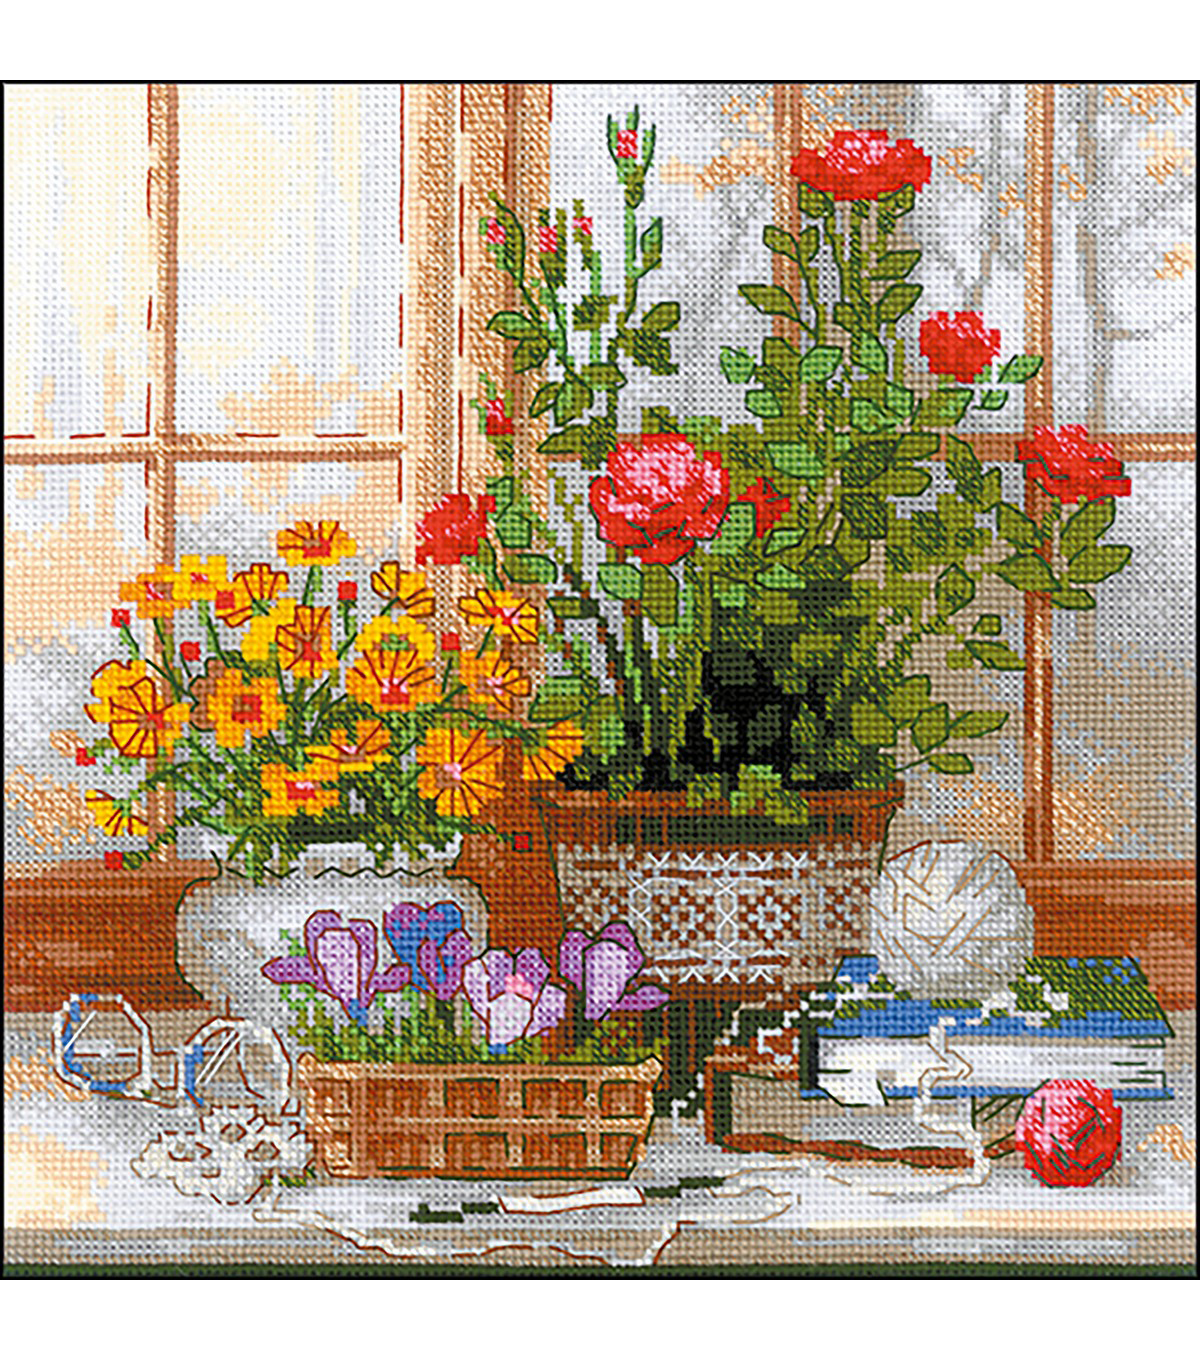 RIOLIS 9.75\u0027\u0027x9.75\u0027\u0027 Counted Cross Stitch Kit-Crocuses on the Windowsill